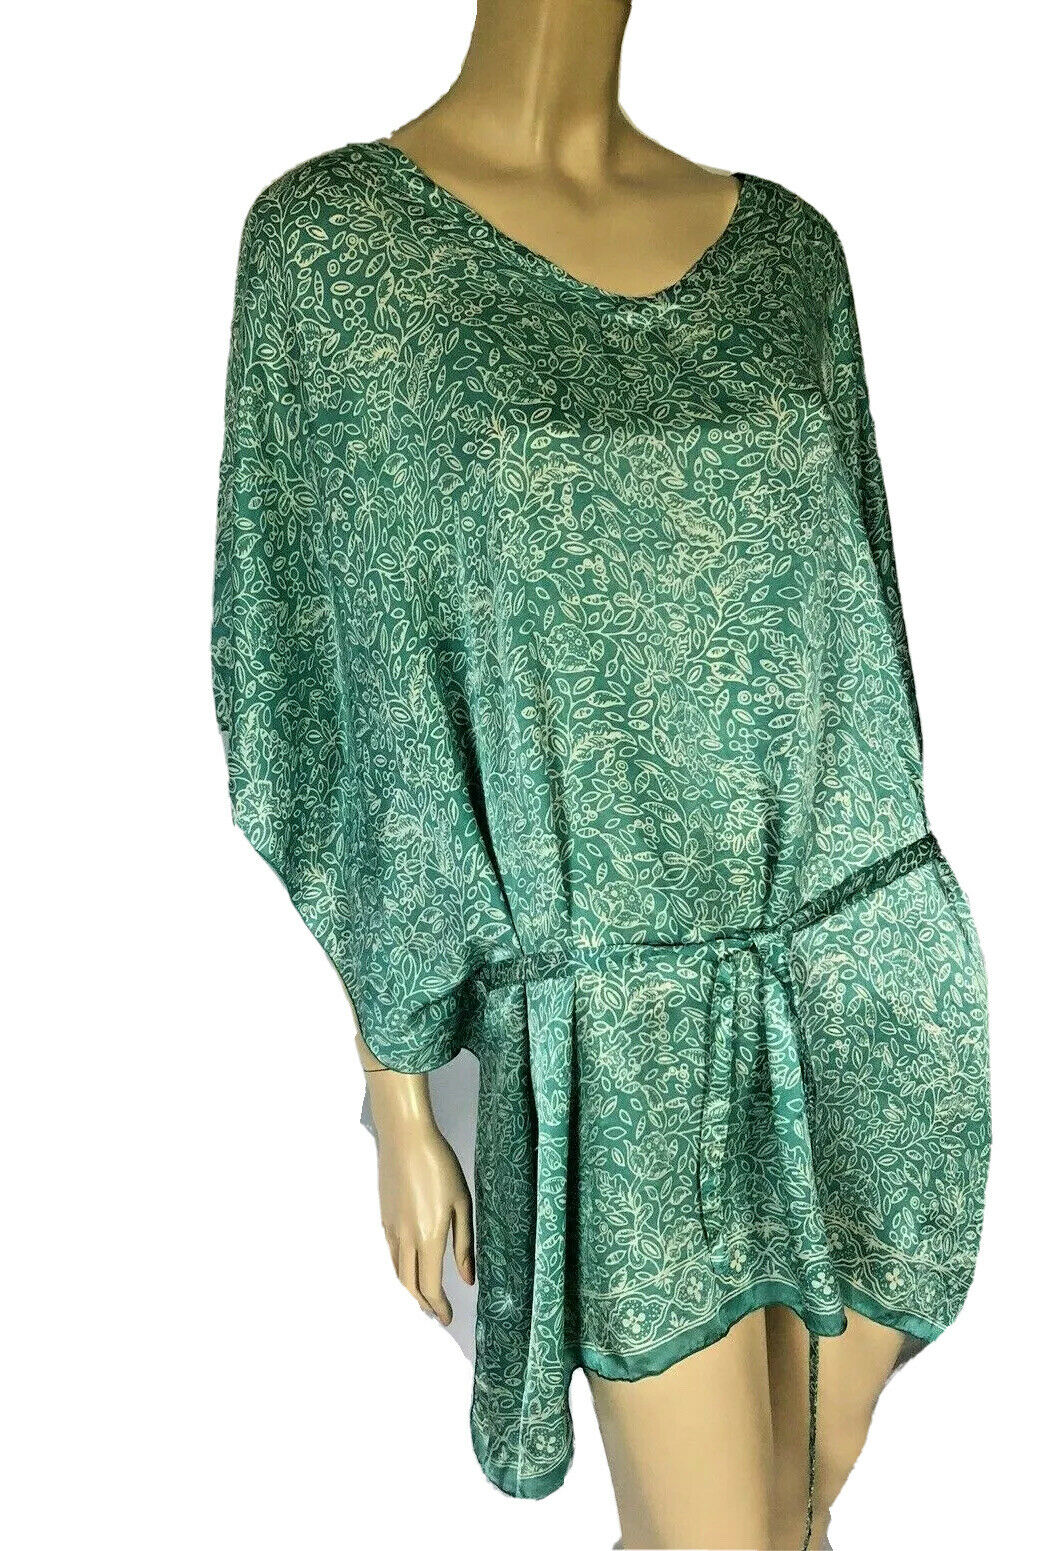 HAND MADE IN INDONESIA GREEN FLORAL PRINT SILK CA… - image 2